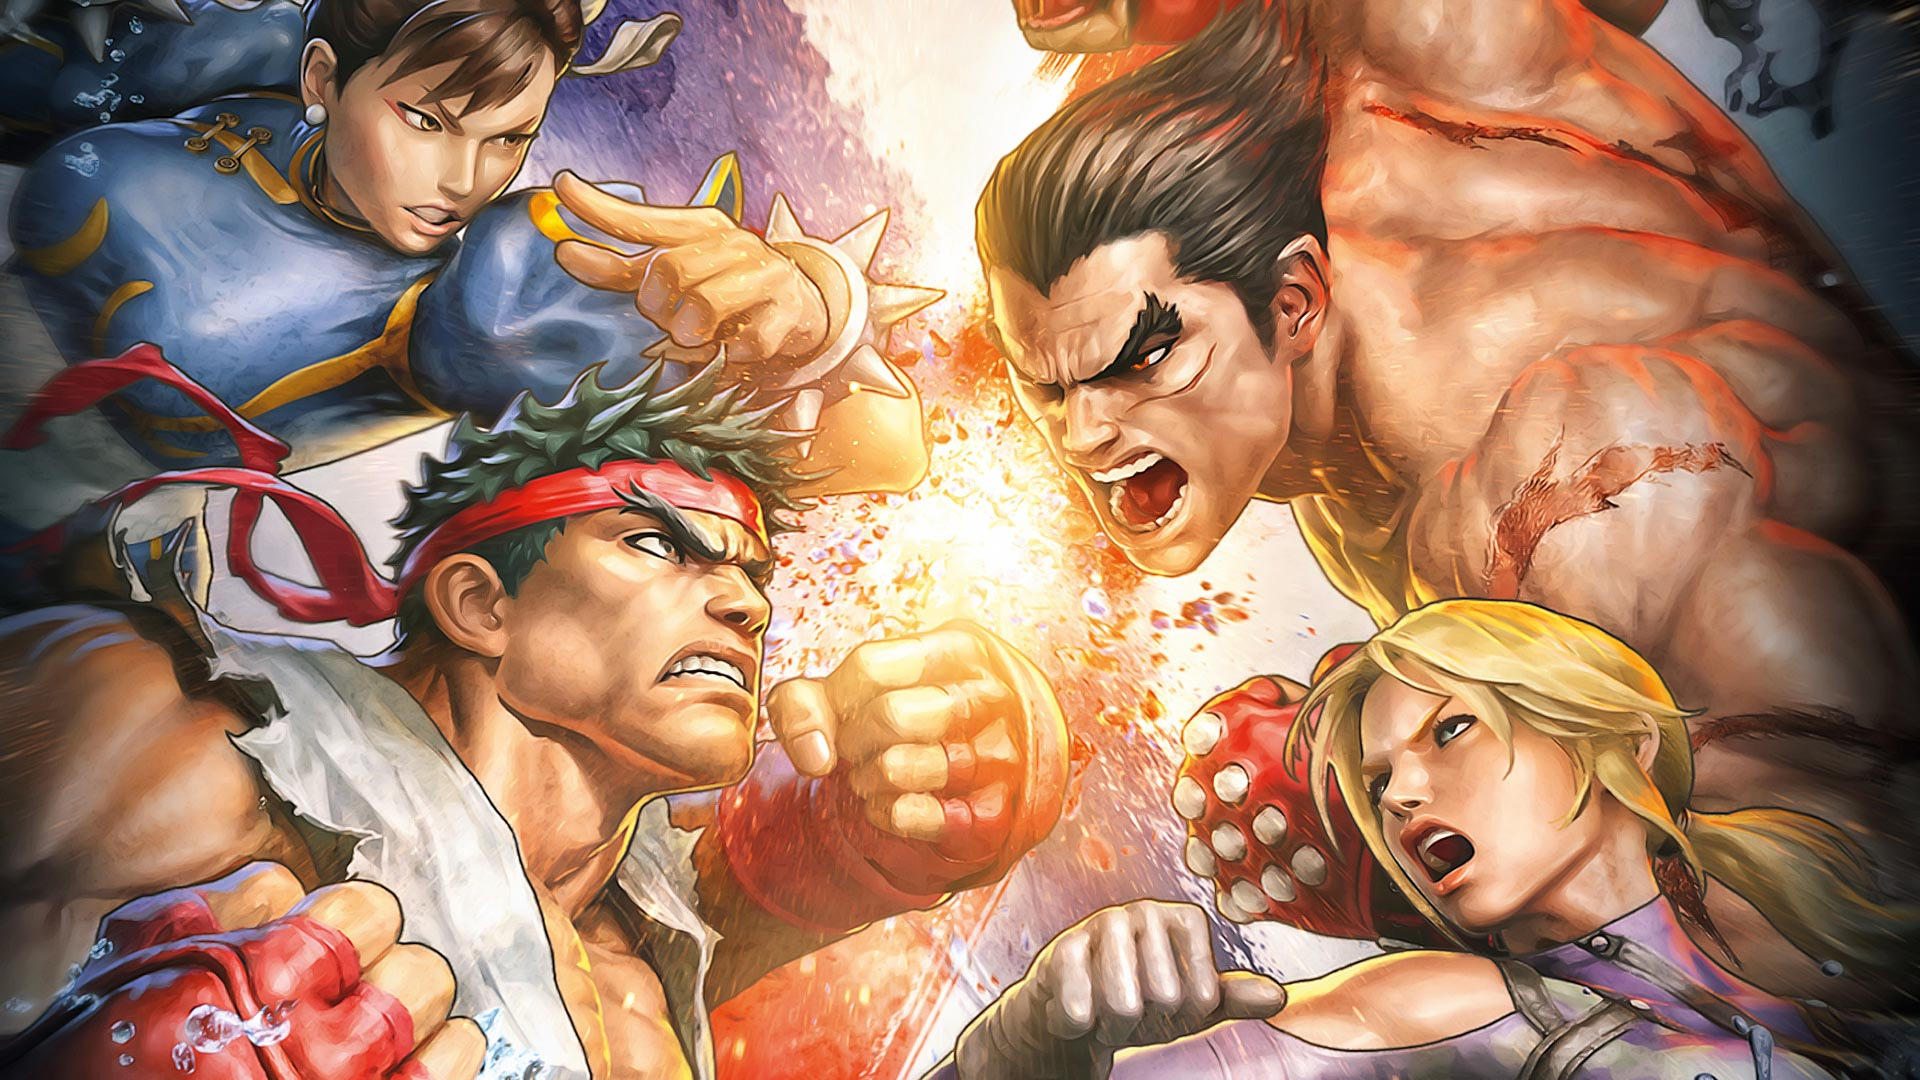 Street-Fighter-X-Tekken-Wallpapers-